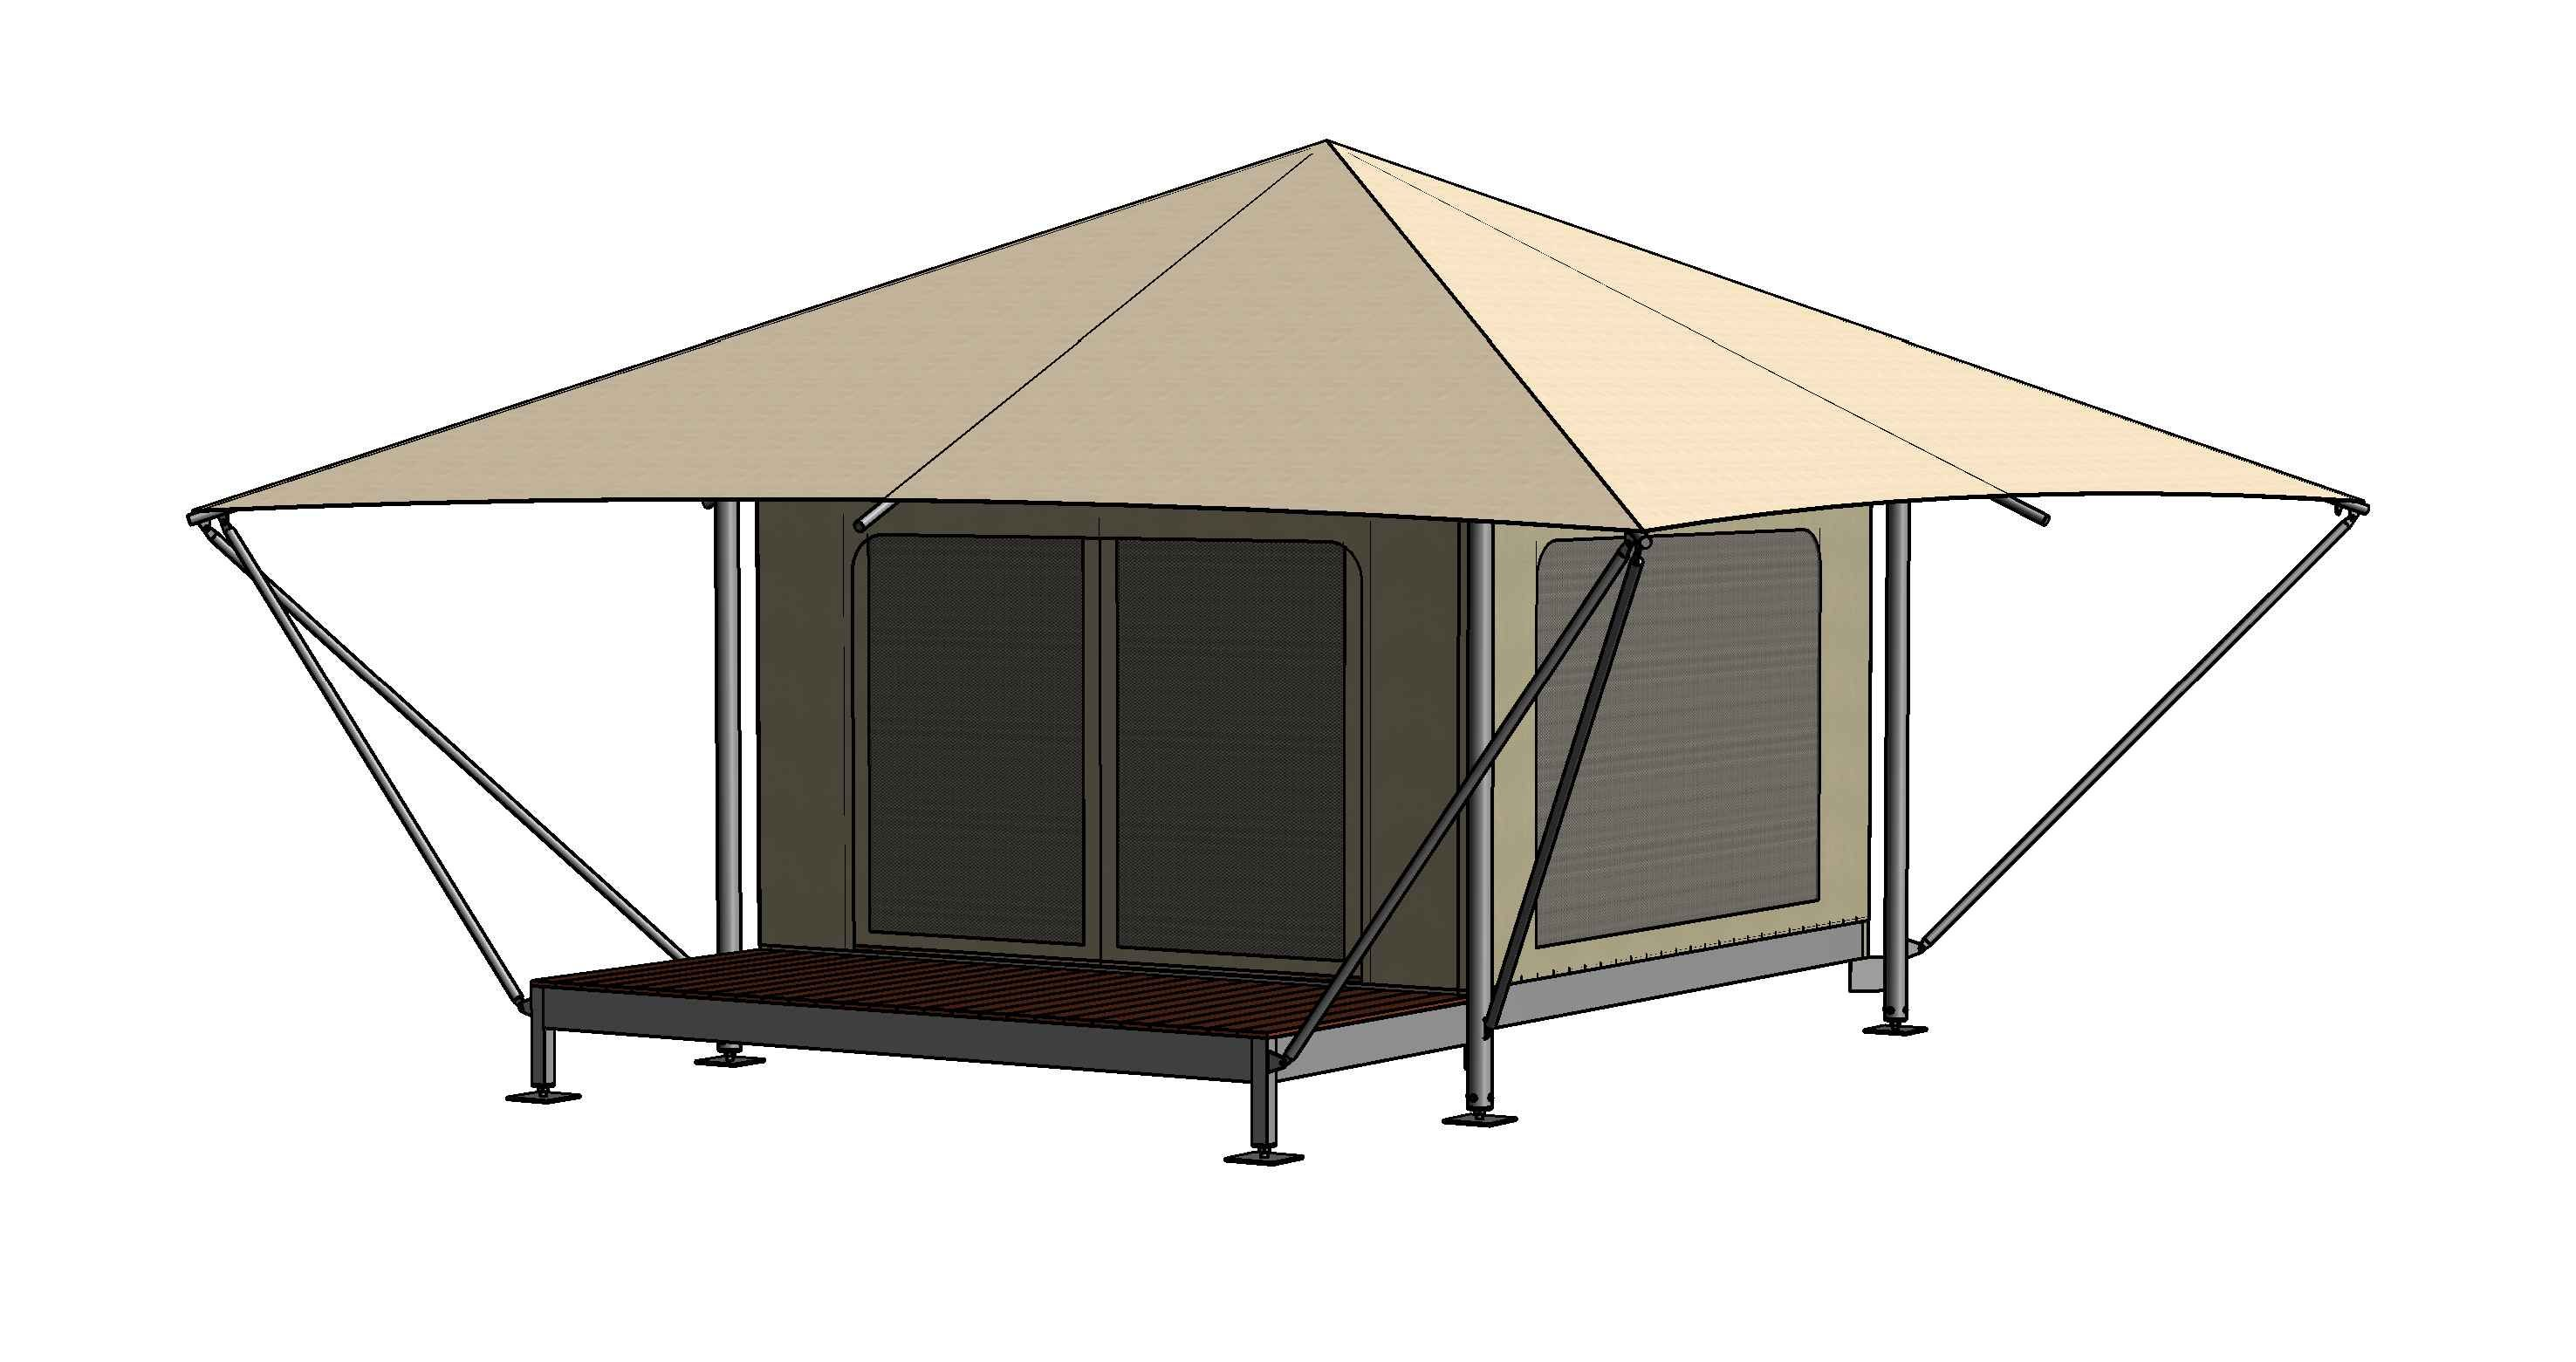 360 degree view of our tent layout - Eco Structures USA  sc 1 st  Pinterest & 360 degree view of our tent layout - Eco Structures USA   peach ...